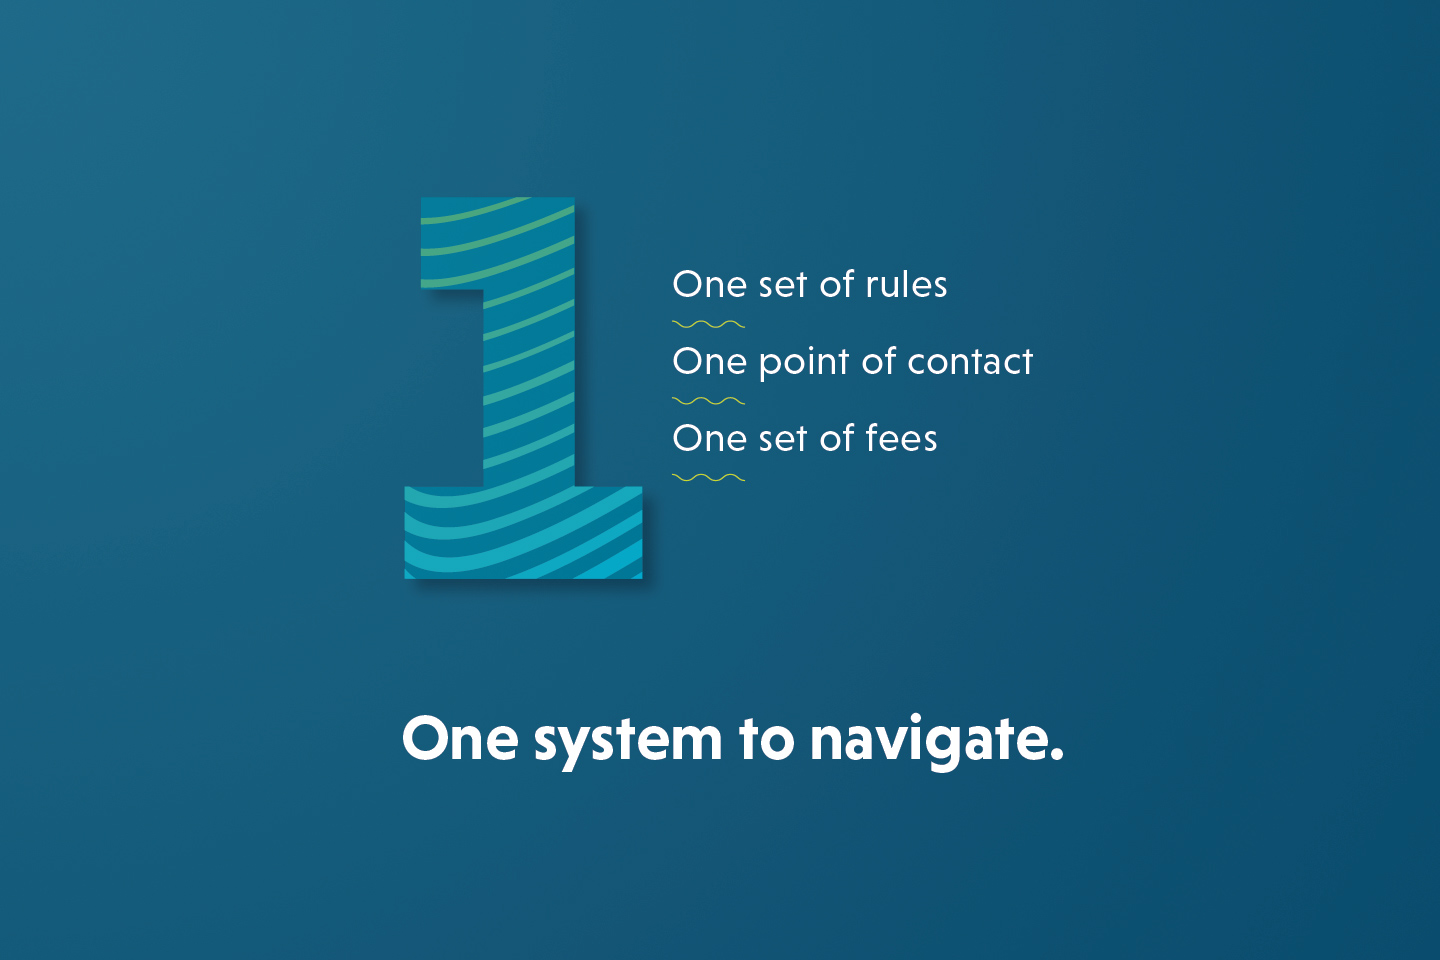 One system to navigate